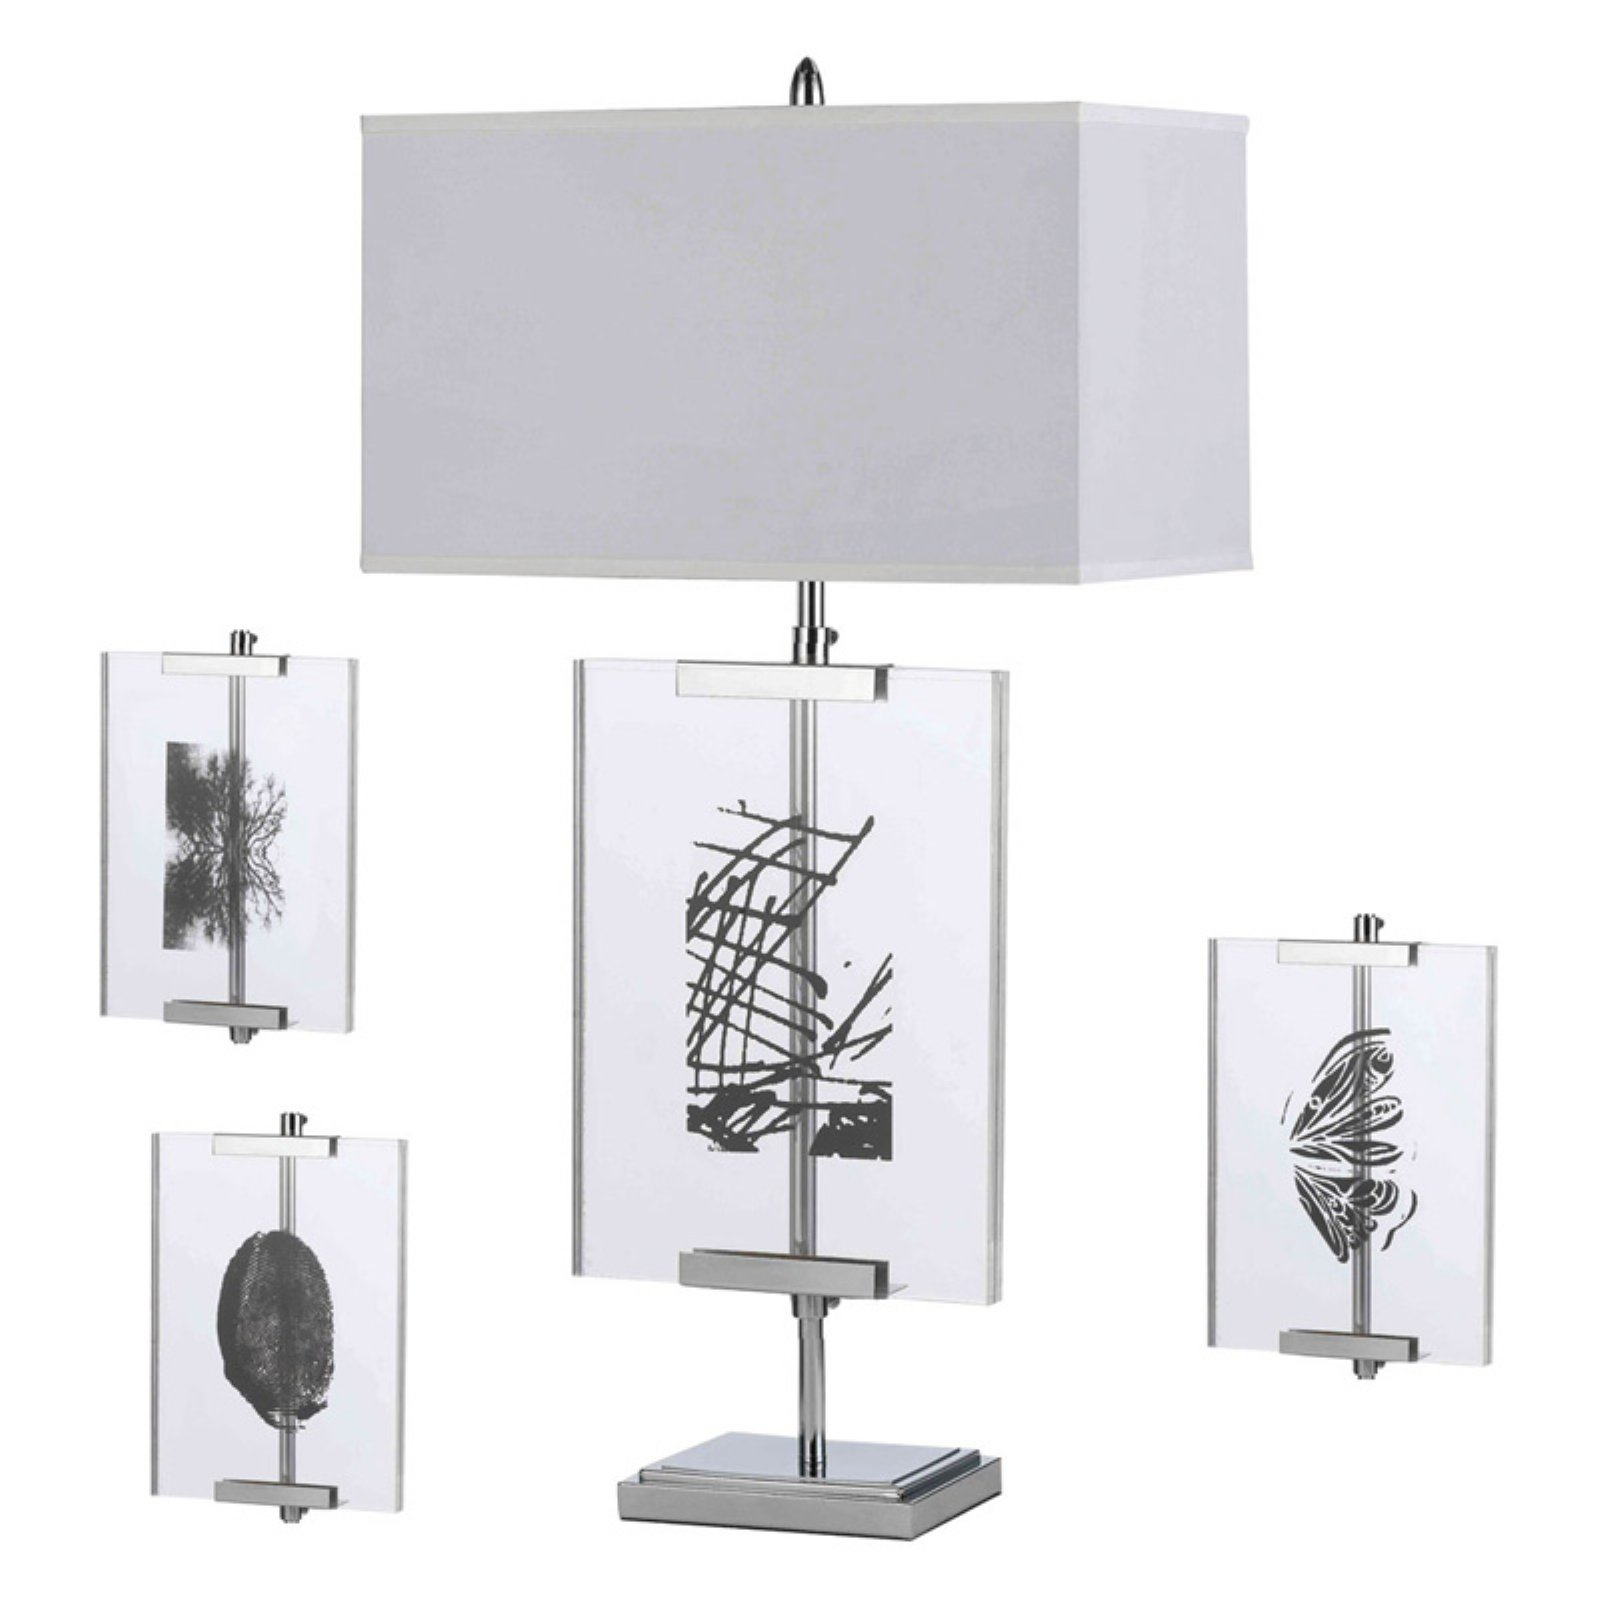 AF Lighting Easel Table Lamp with Interchange Panels